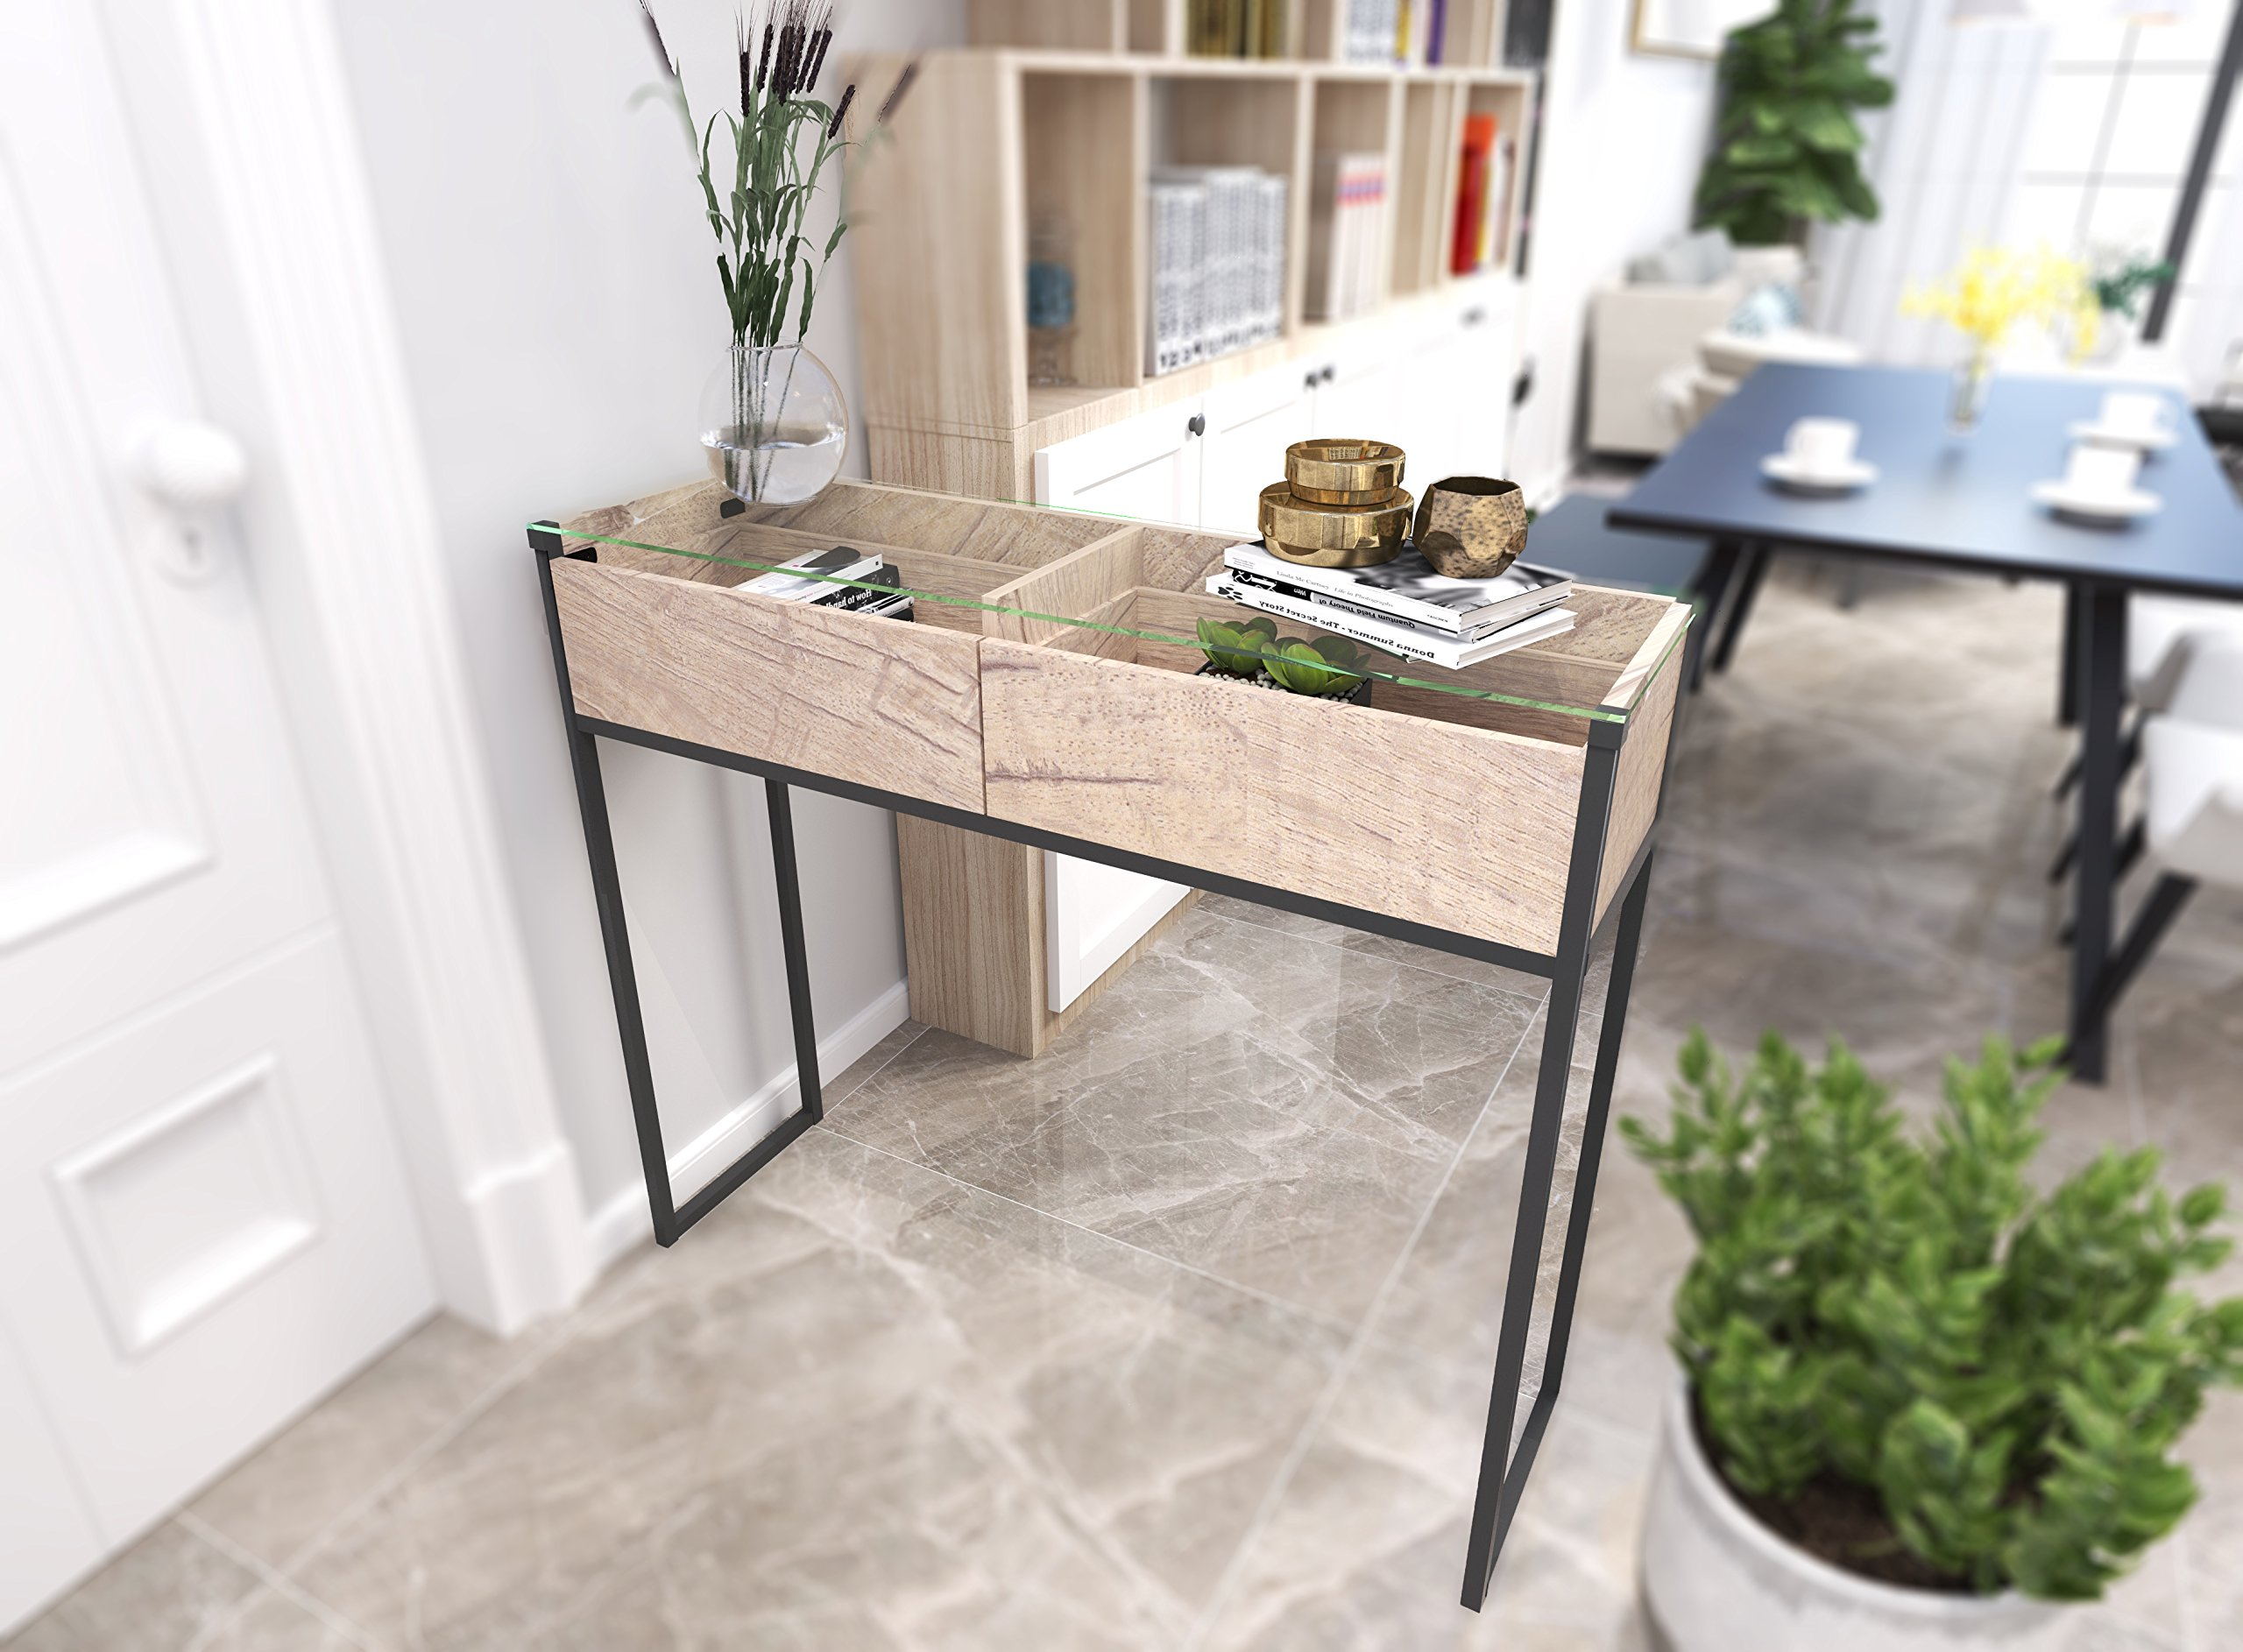 Tilly Lin Clear Glass Top Console Table, Sofa Table with 2 Drawers, Accent Display, Vintage Oak - 5 mm thick tempered glass top,clear tempered glass is strong and durable. Can be used as office workstation, meeting desk, home desk, credenza, TV stand. Put it in the entryway or behind a sofa, and also makes a chic media stand with straight industrial black metal table frame. Two drawers provide ample storage space, handy drawer display all your home essentials and organizes your items with the 2 drawer divider - living-room-furniture, living-room, console-tables - 81Yvvpz6gWL -